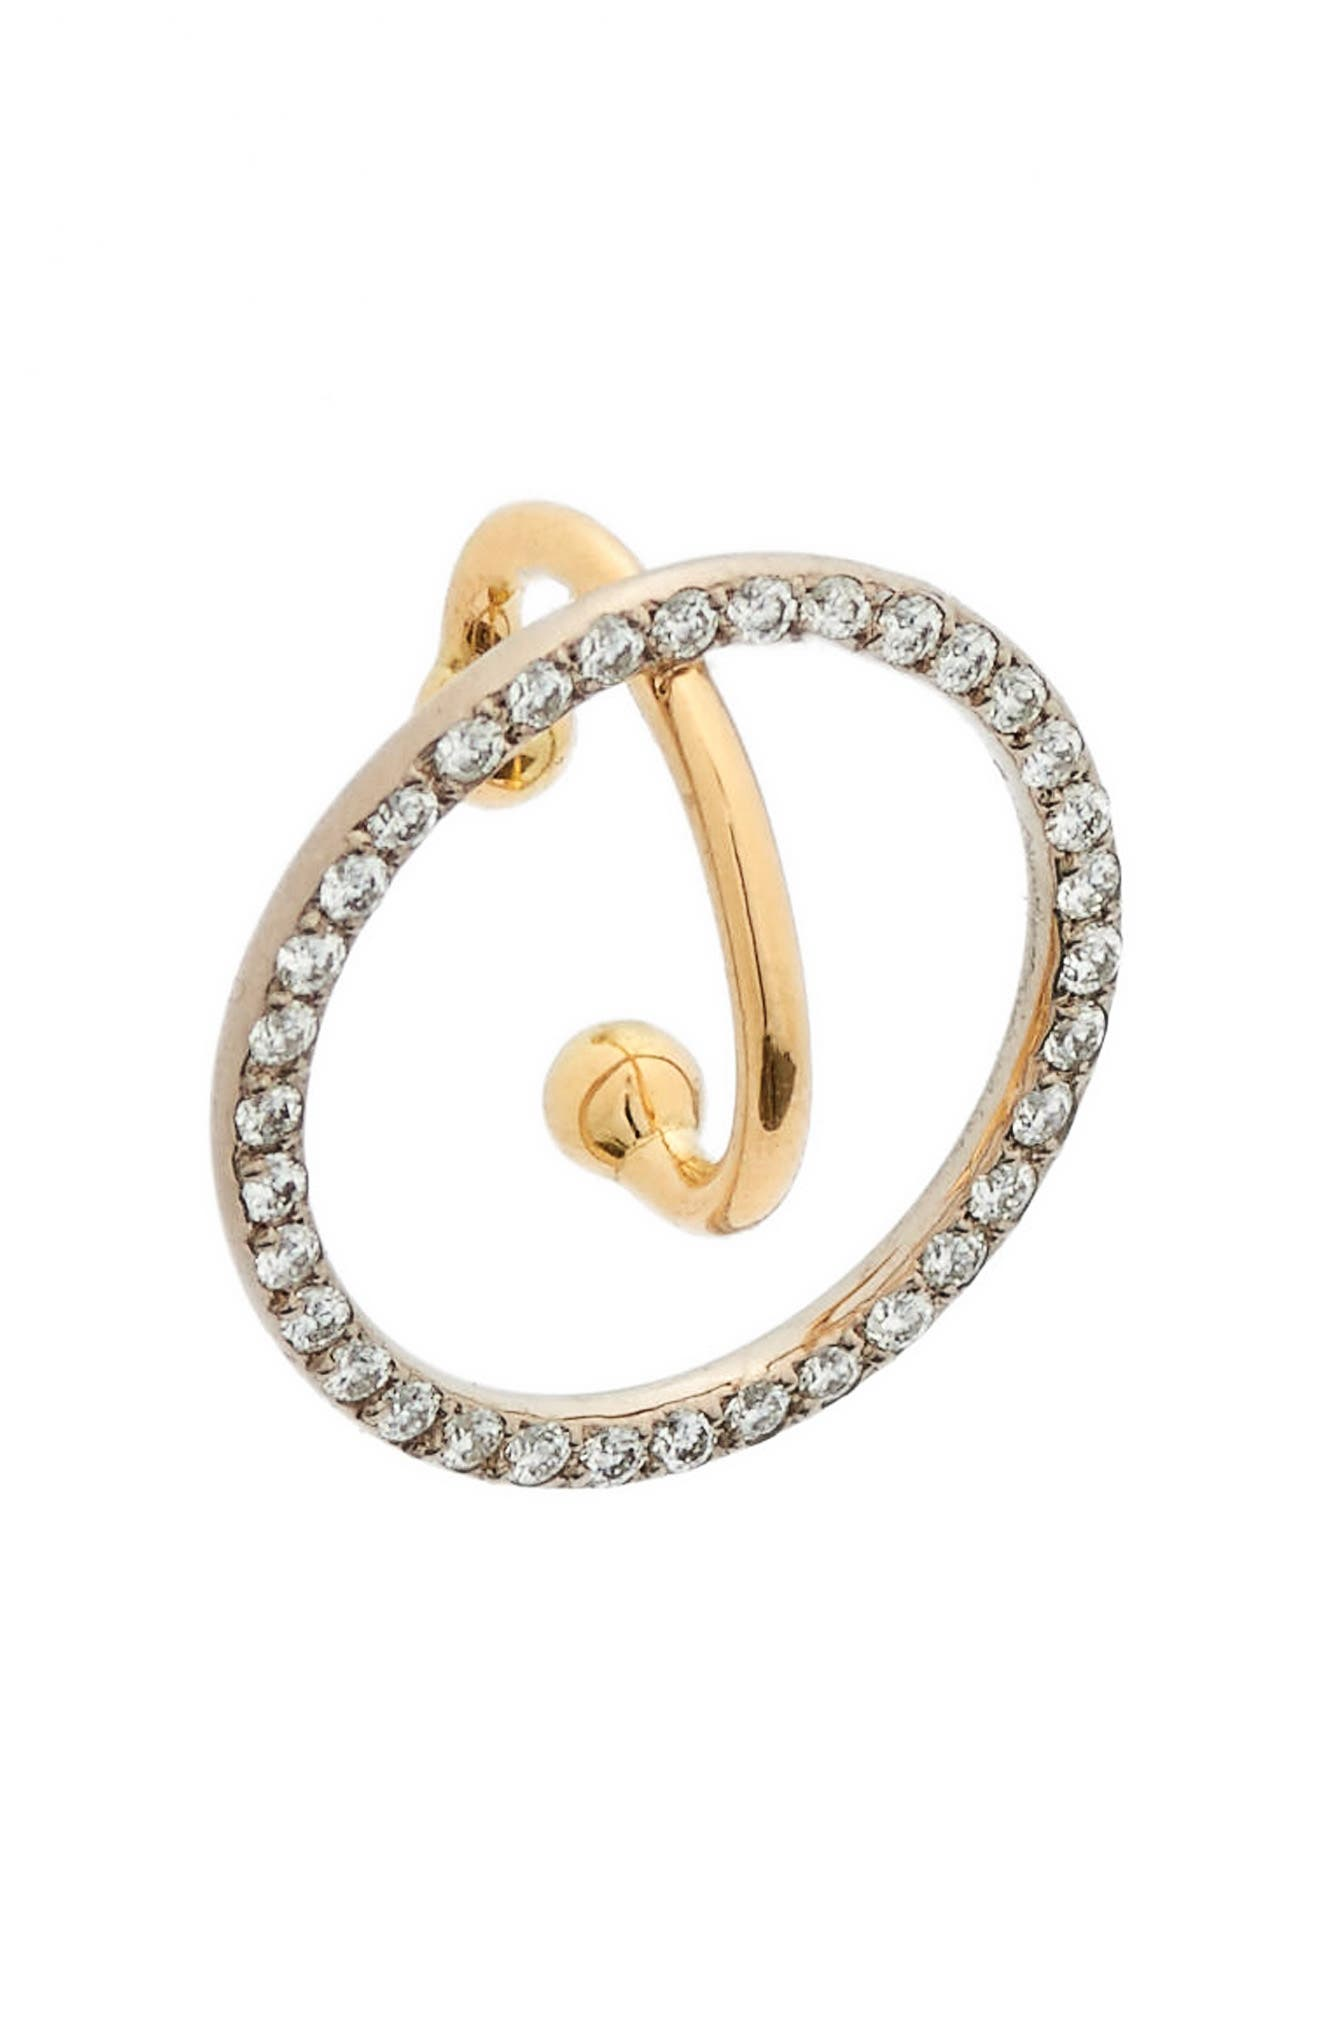 Celeste Diamond Earring,                         Main,                         color, YELLOW WHITE GOLD DIAMONDS